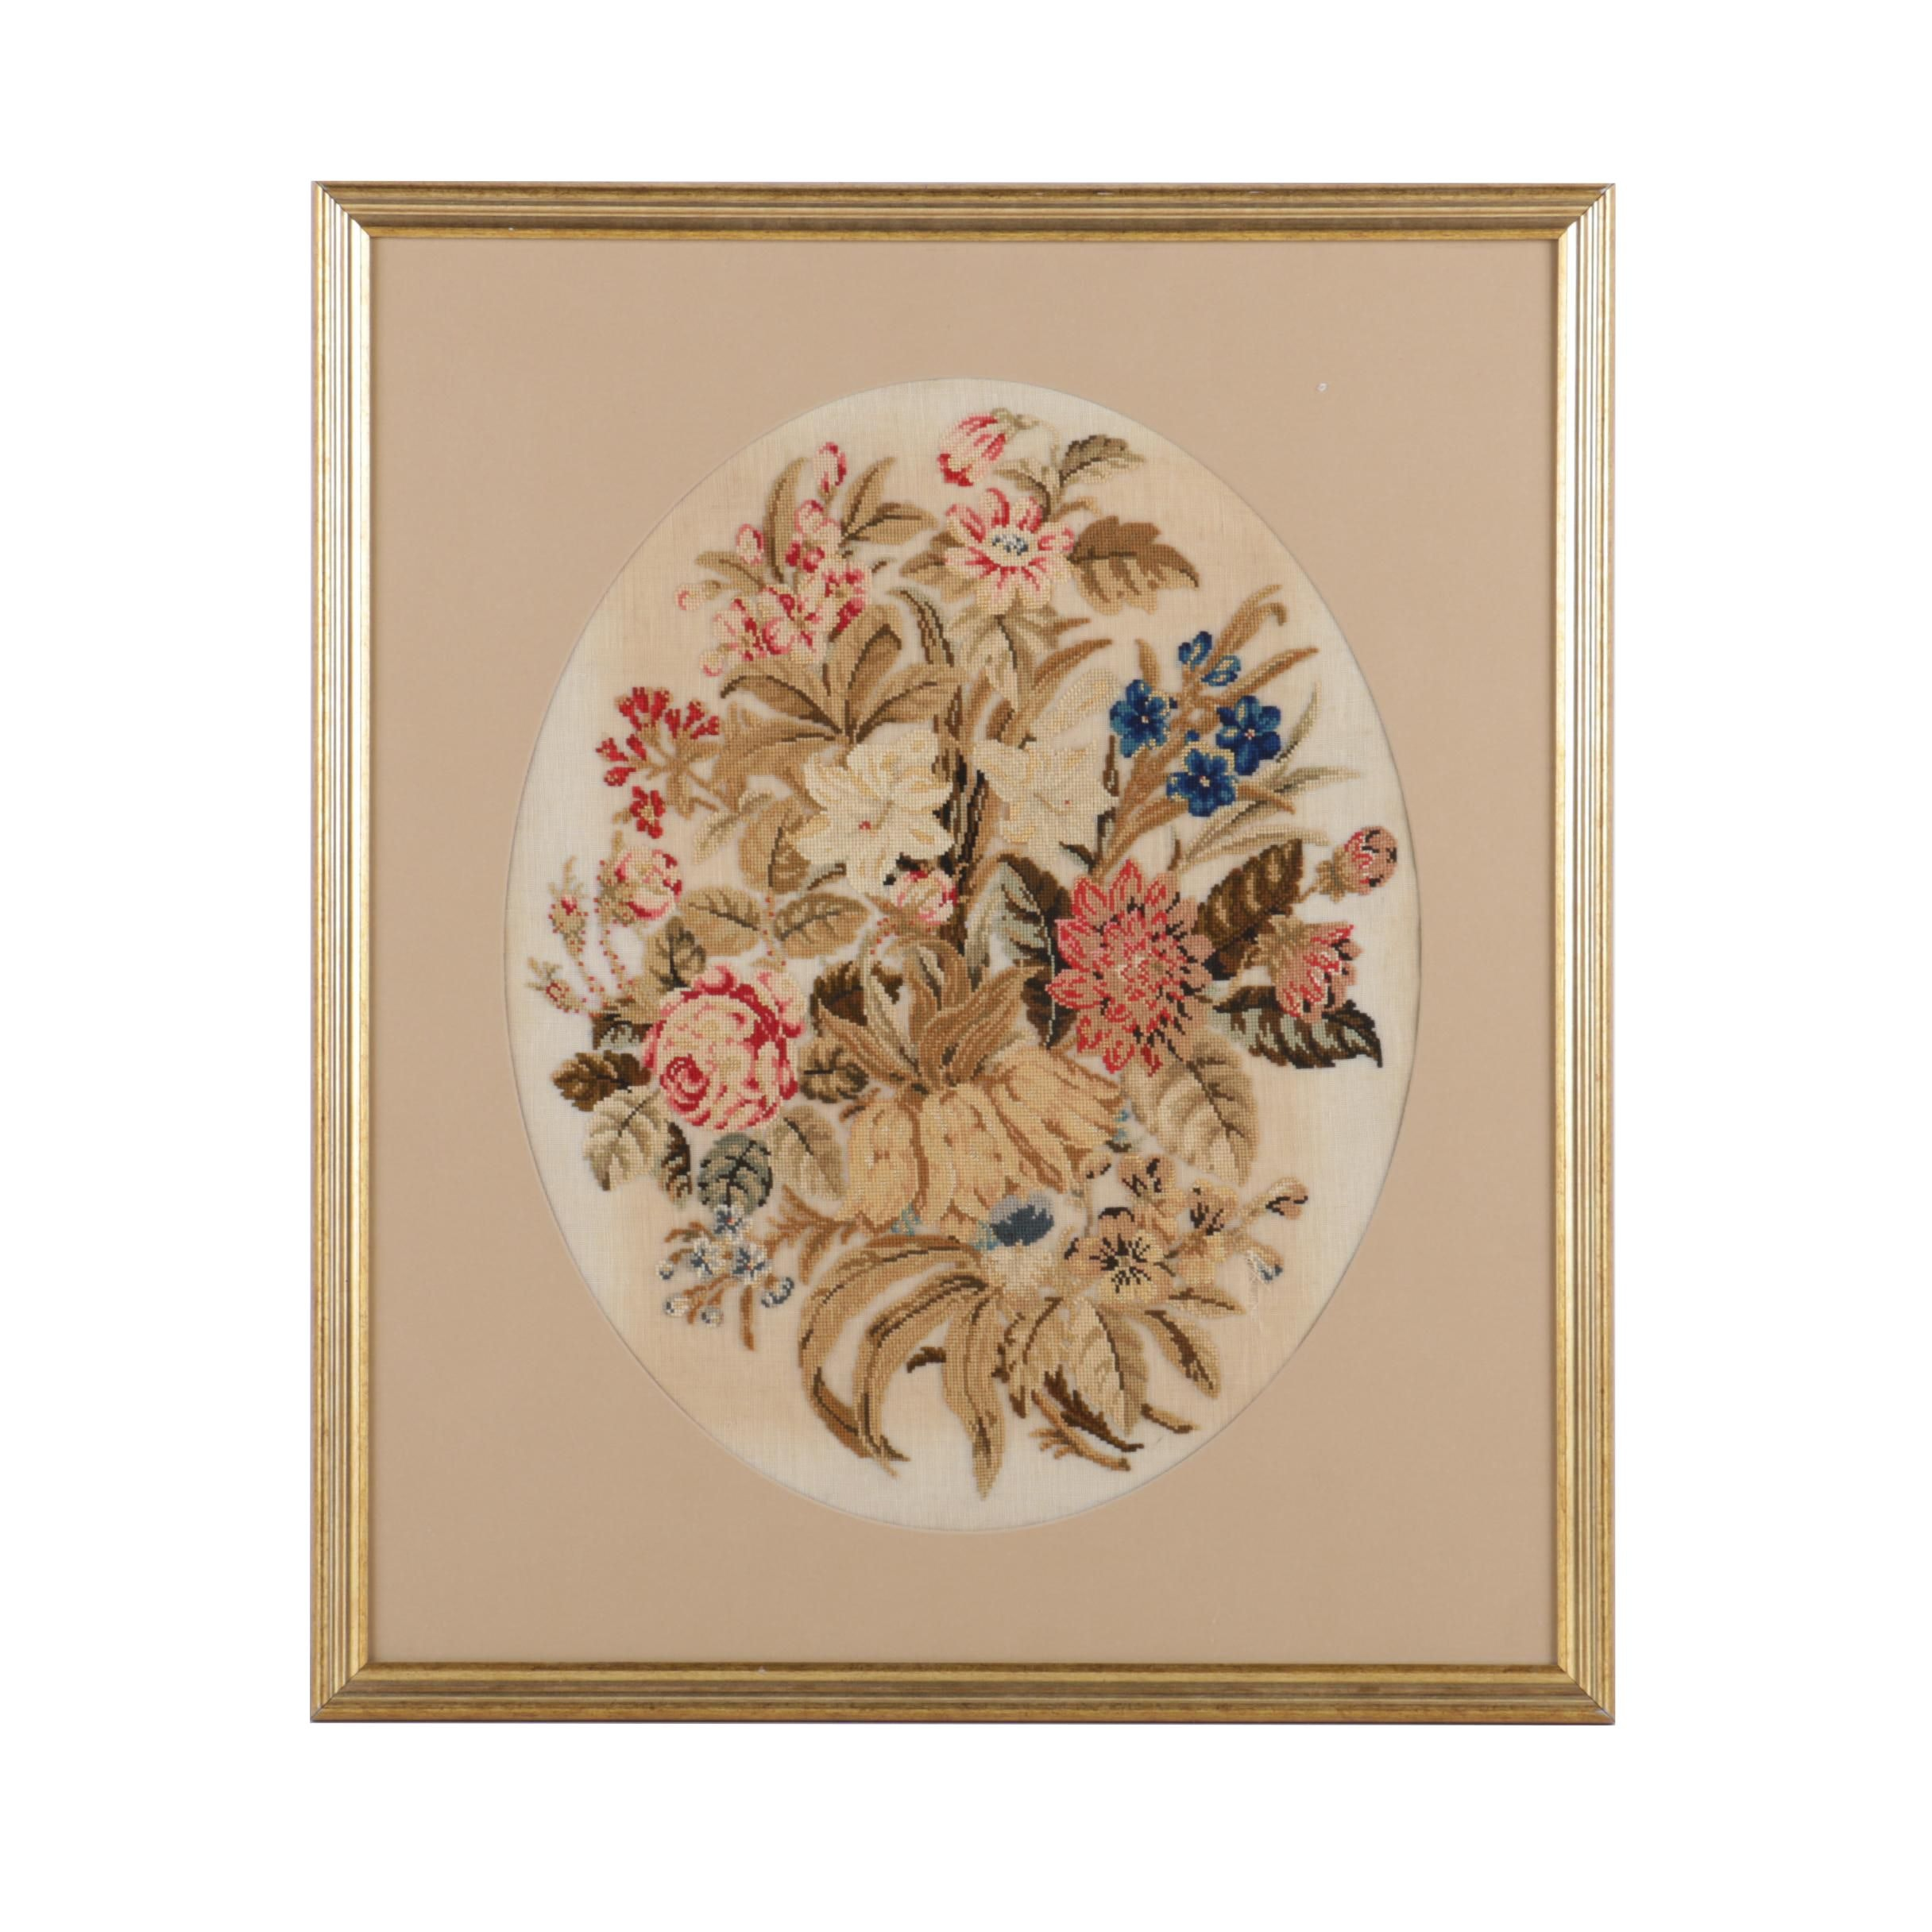 Vintage Cross-Stitch Embroidery of Flowers